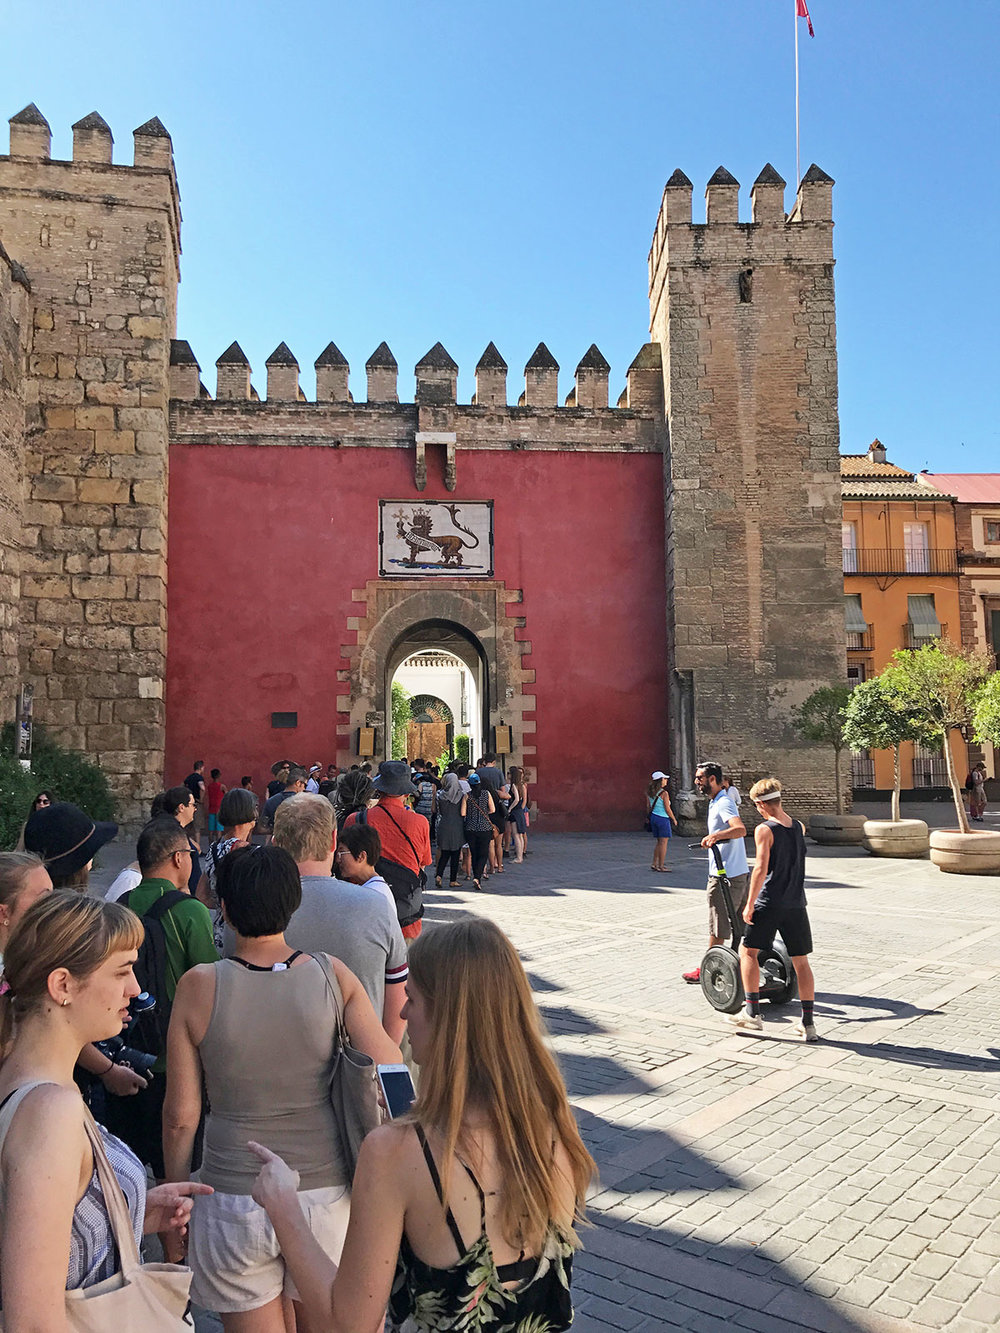 The entrance to the Alcázar, and the long line of summer visitors